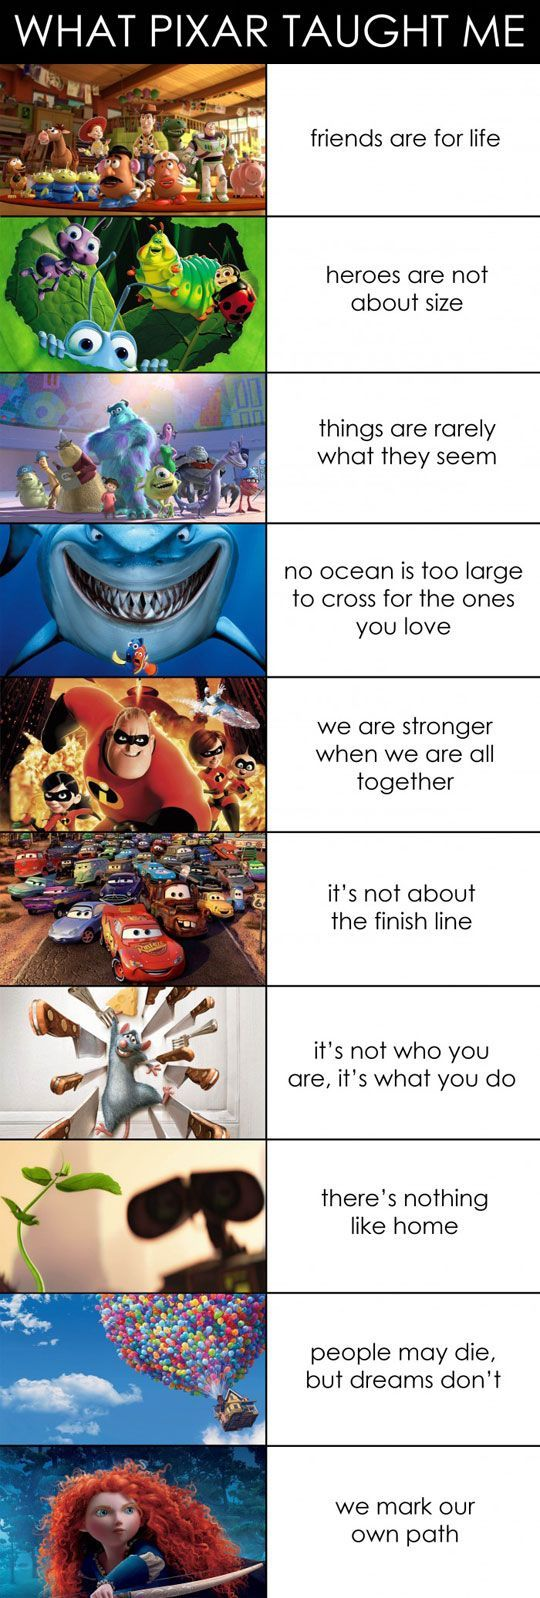 Basic themes for different Disney Pixar movies